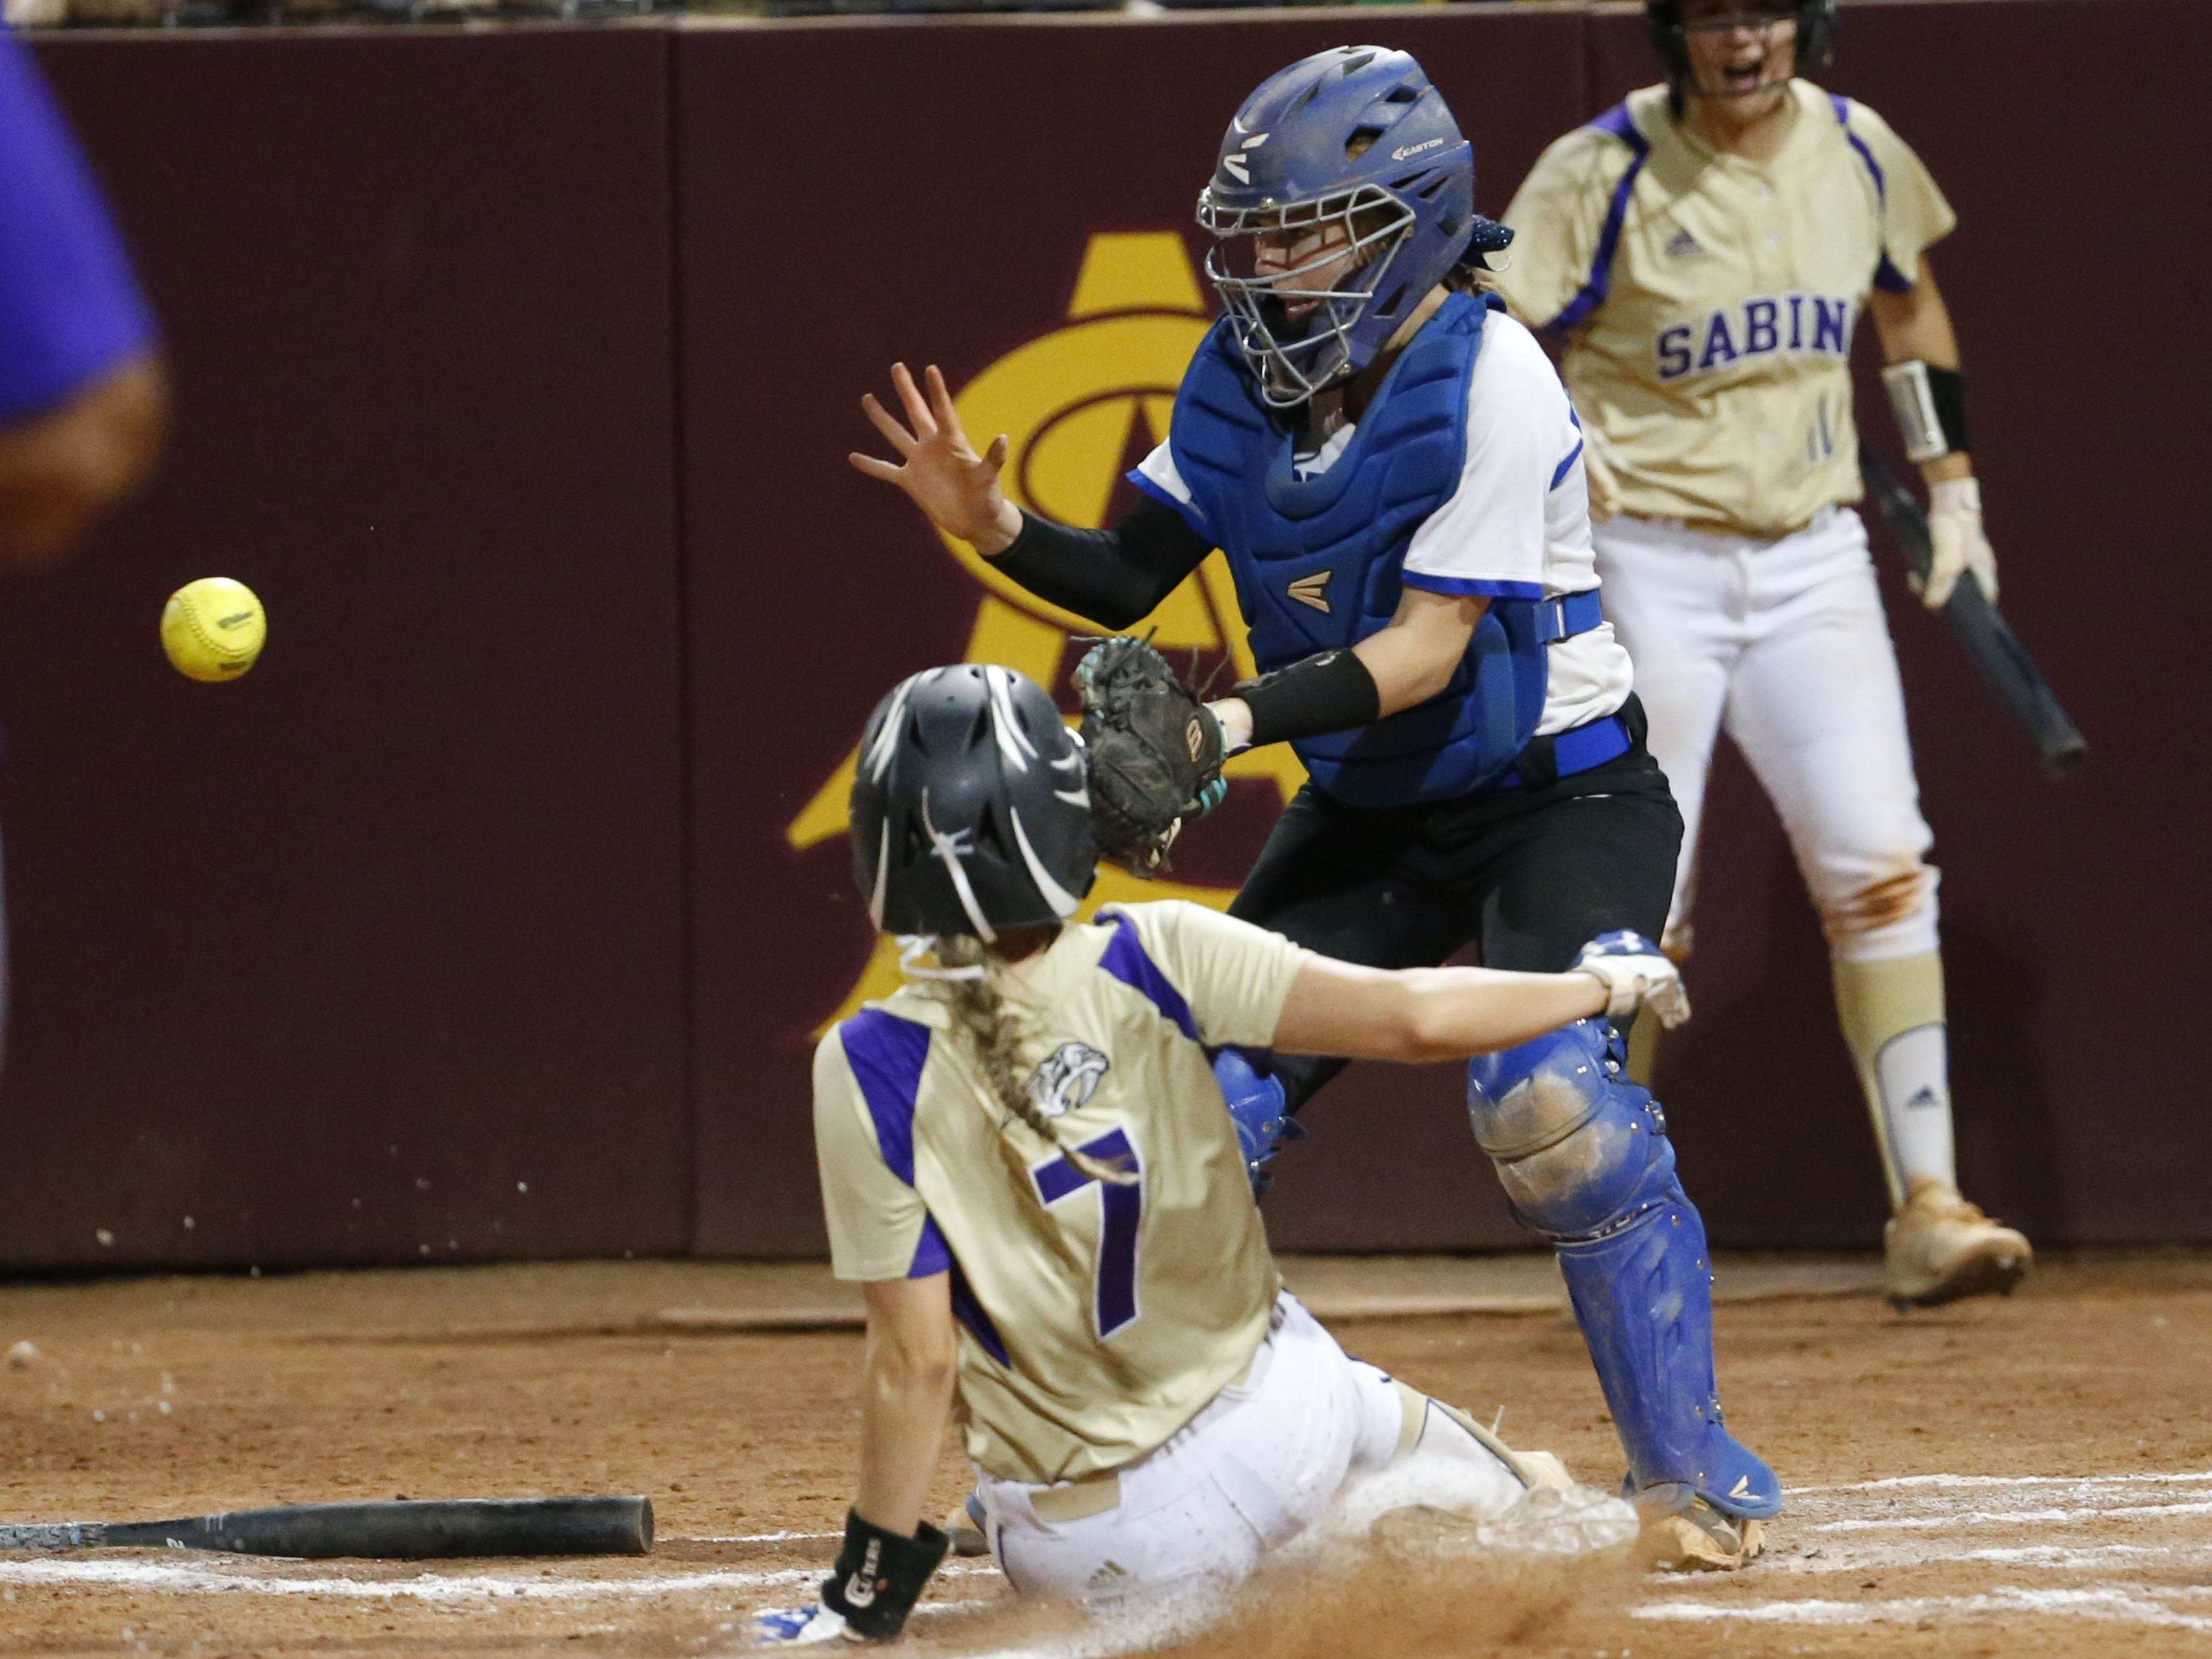 Sabino shortstop Sydney Gary (7) scores ahead of the tag by Snowflake catcher Jordyn Powers (11) during the 3A softball state championship game in Tempe May 6, 2019.